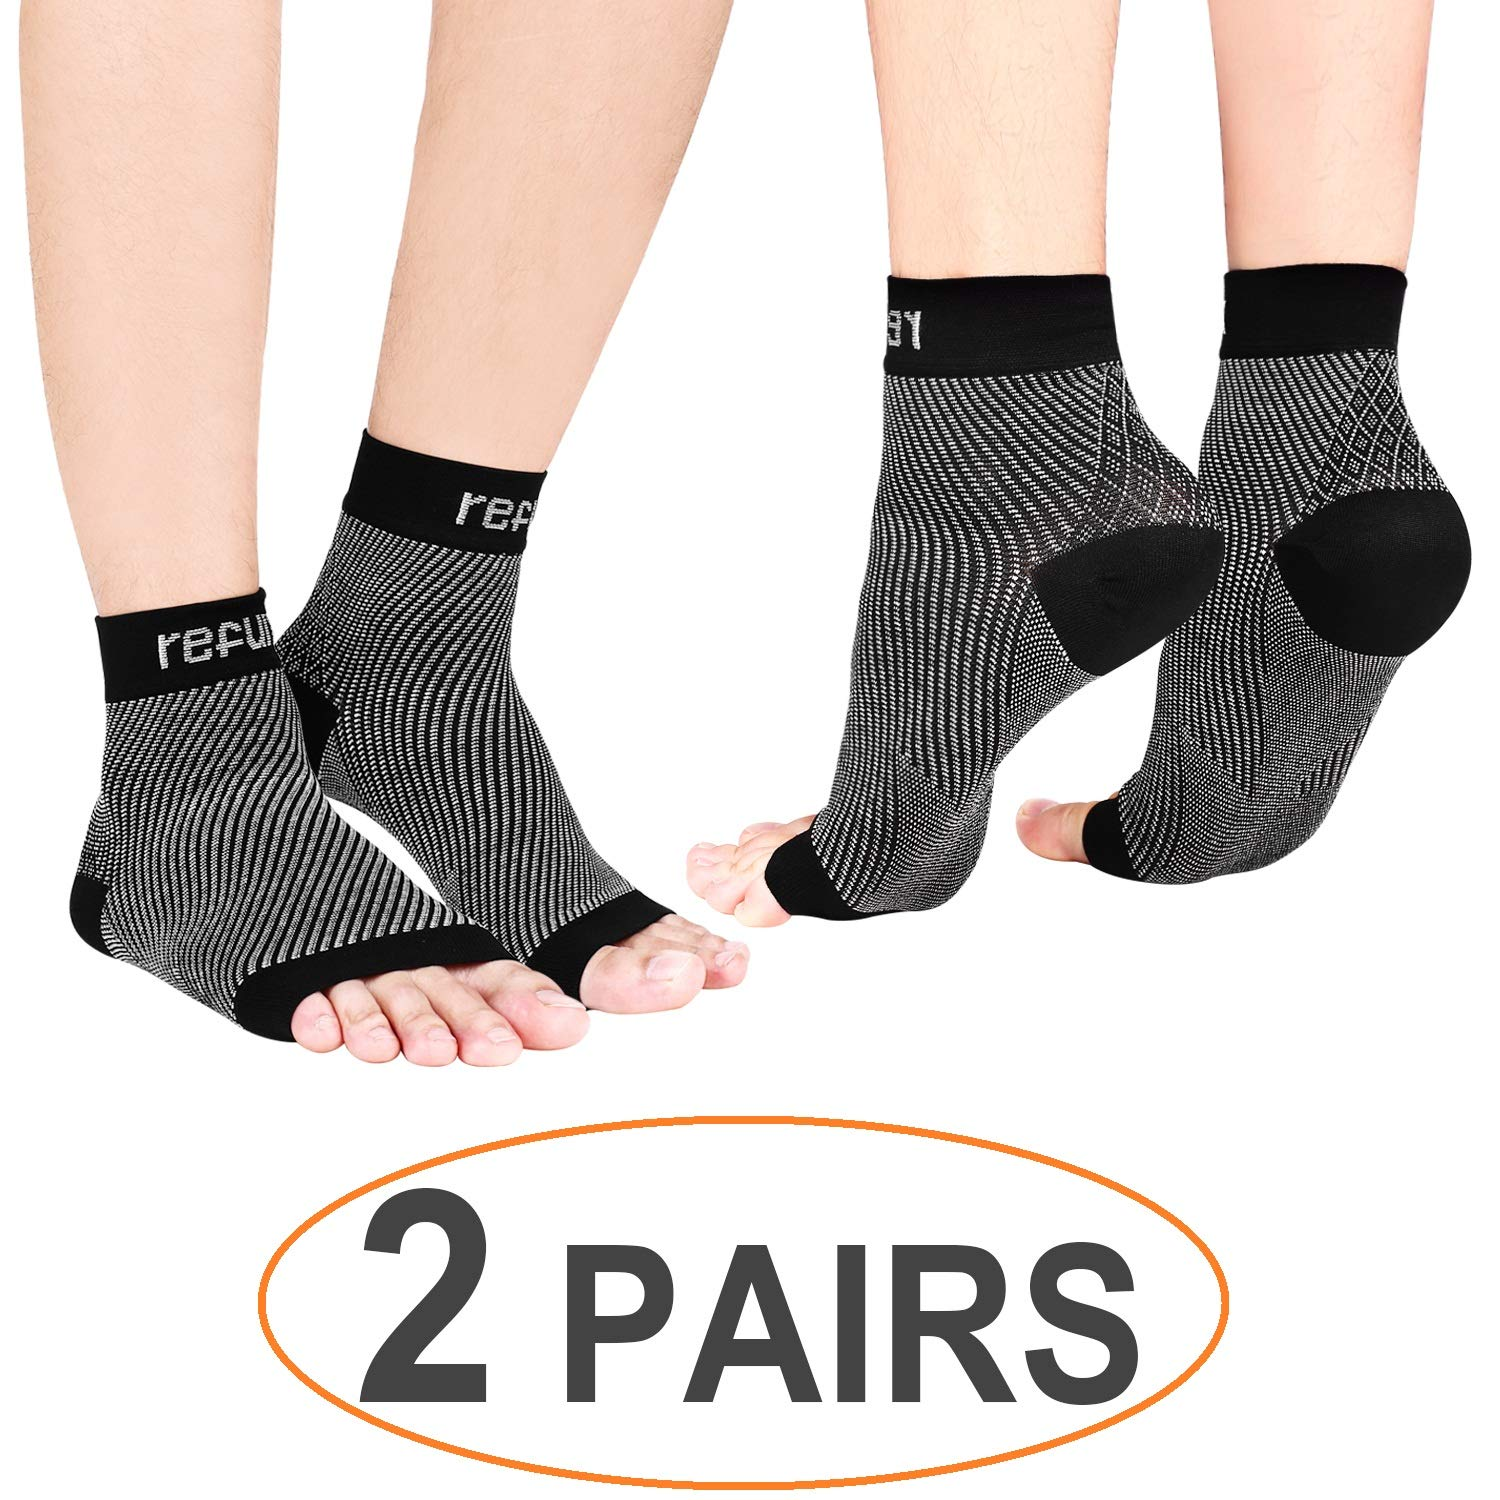 refun Plantar Fasciitis Socks (2 Pairs), Compression Foot Sleeve Arch Support